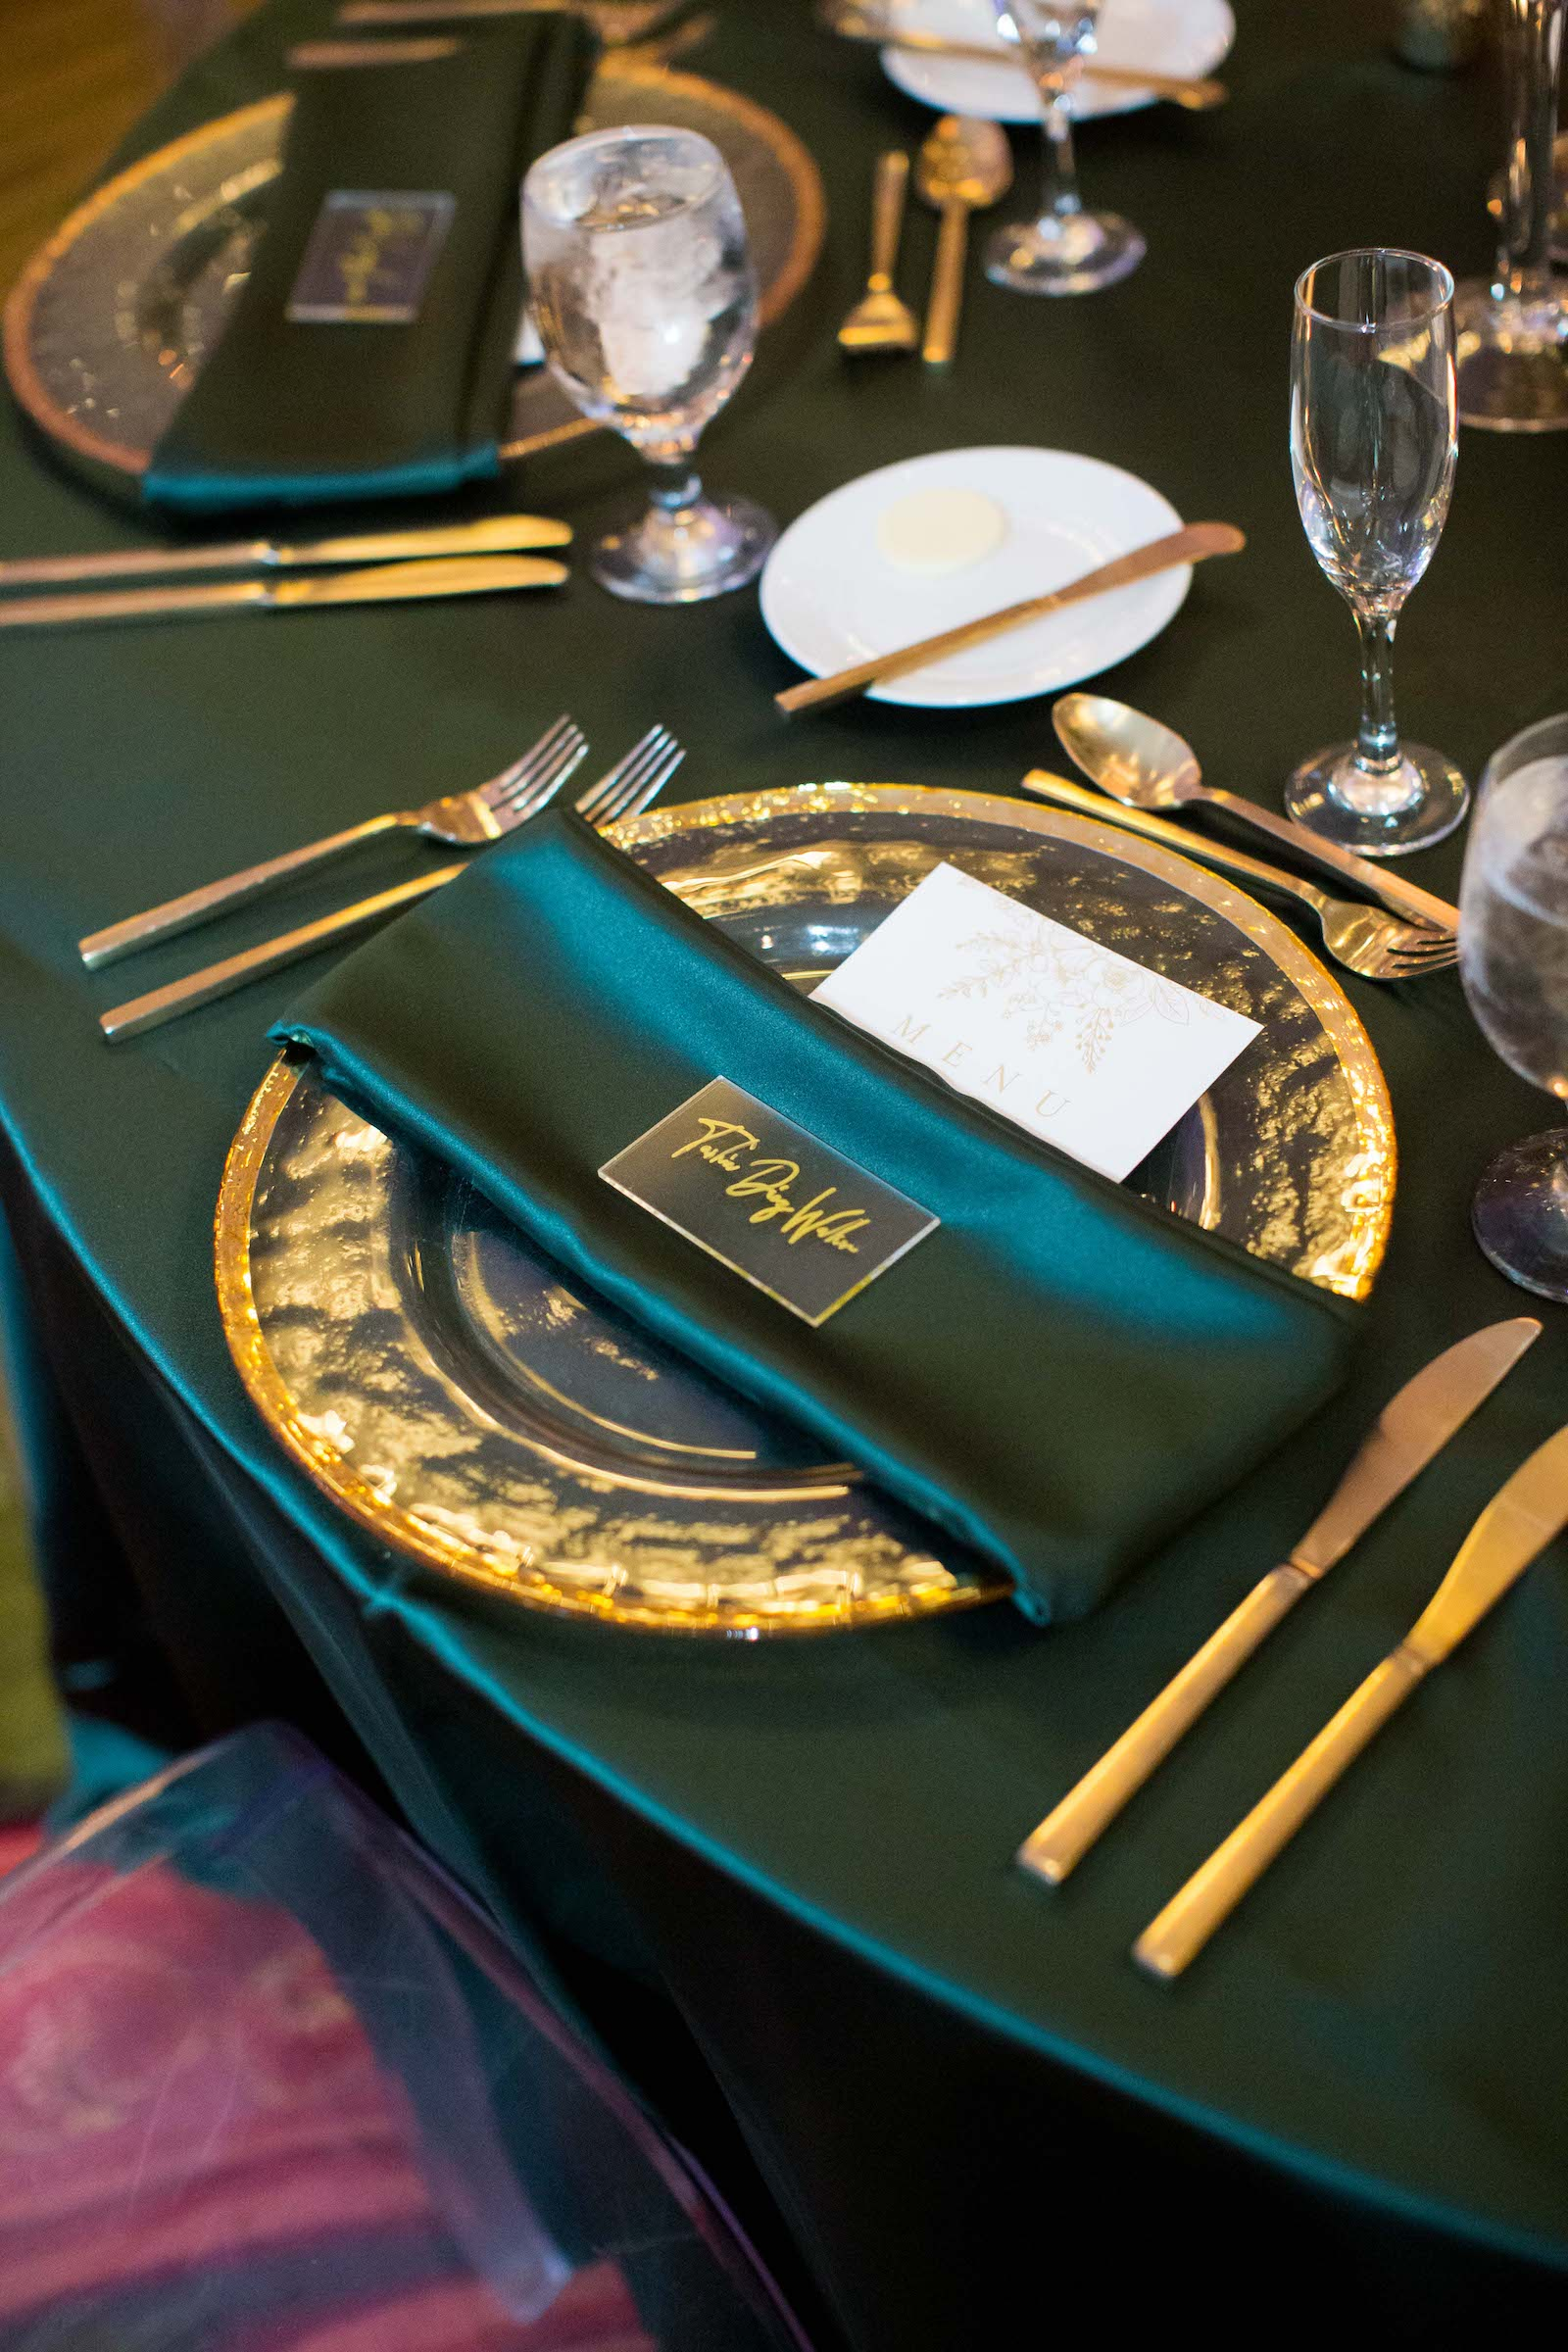 Elegant Wedding Reception Decor, Emerald Green Linens, Gold Chargers and Flatware, Acrylic Place Card | Tampa Bay Wedding Planner Parties A'la Carte | Wedding Rentals A Chair Affair